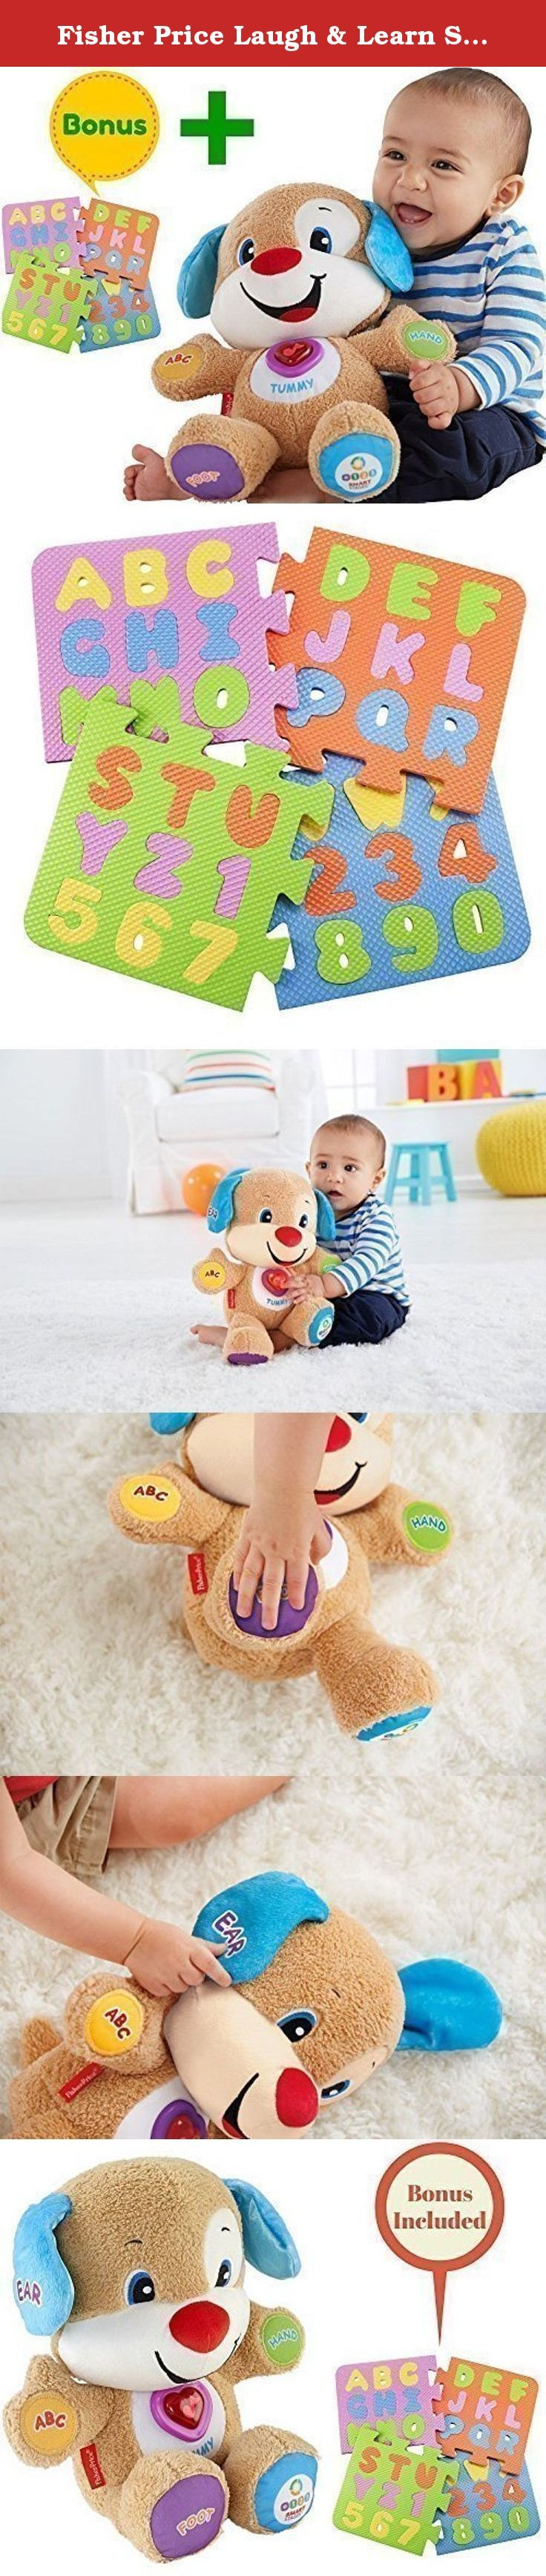 Fisher Price Laugh & Learn Smart Stages Puppy | Babies Toys Learn Smart Stages | Educational toys for toddlers, Infants | With A Humble Bundle. LAUGH and LEARN FISHER PRICE PUPPY FINALLY AN EDUCATIONAL TOY BUNDLE THAT WILL HELP YOU RAISE THE NEXT EINSTEIN Fisher Price Laugh and Learn Smart Stages Puppy along with another Educational Foam Puzzle (It might differ in color content and style) (Not Fisher-Price Product) designed to take the toy hunt to another level. The complimentary…